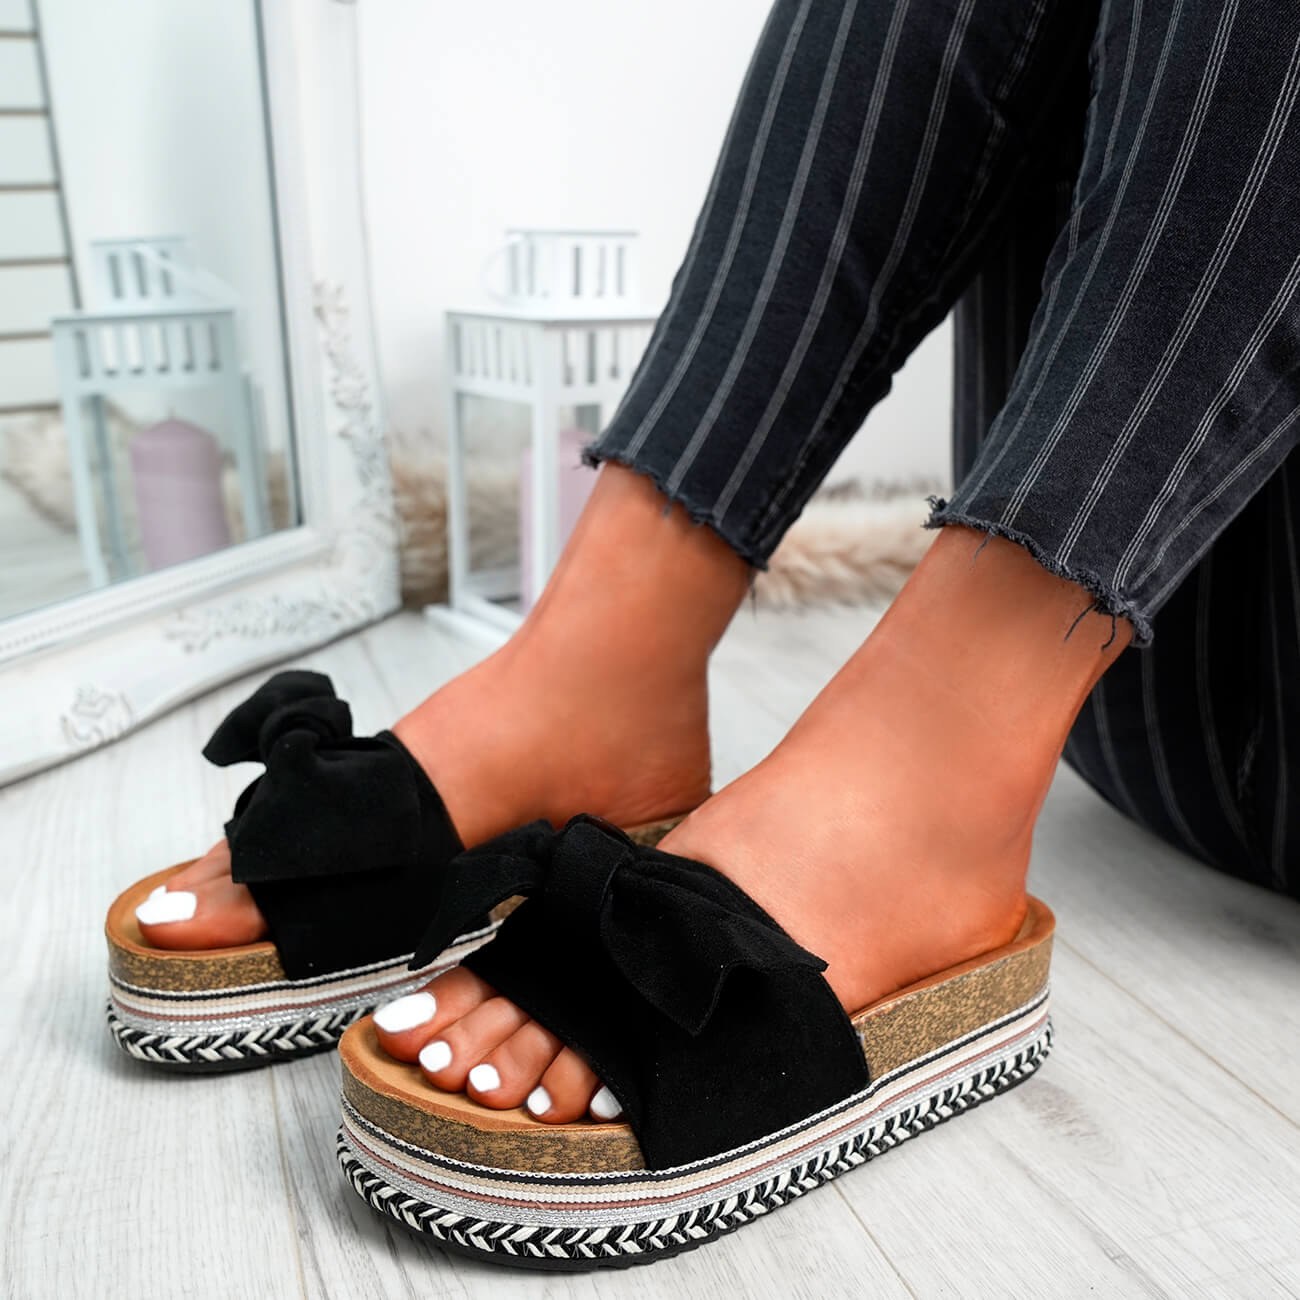 WOMENS-LADIES-BOW-SLIDERS-SLIP-ON-FLATFORMS-SUMMER-PARTY-SANDALS-SHOES-SIZE thumbnail 9